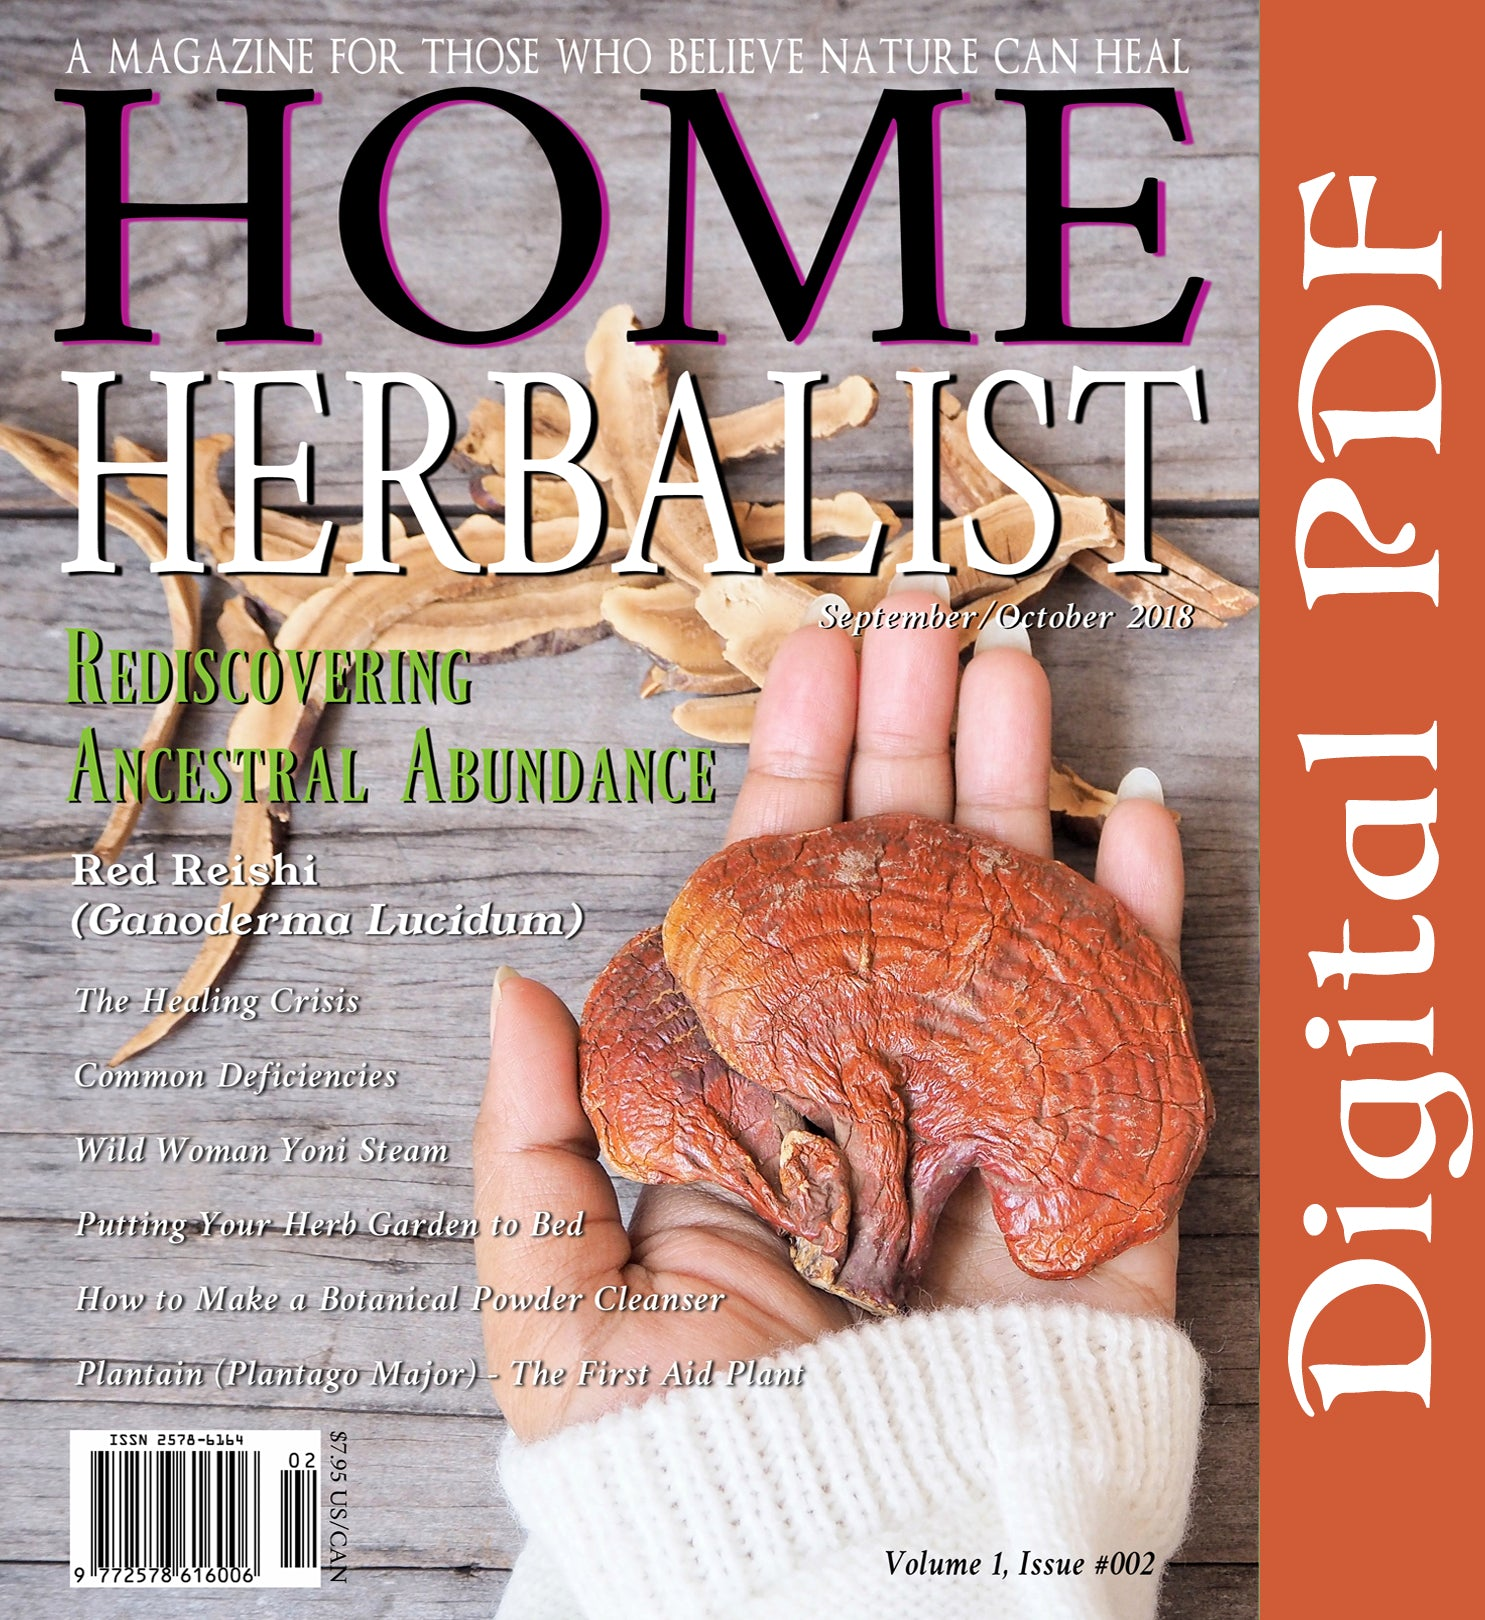 Issue #002 Rediscovering Ancestral Abundance